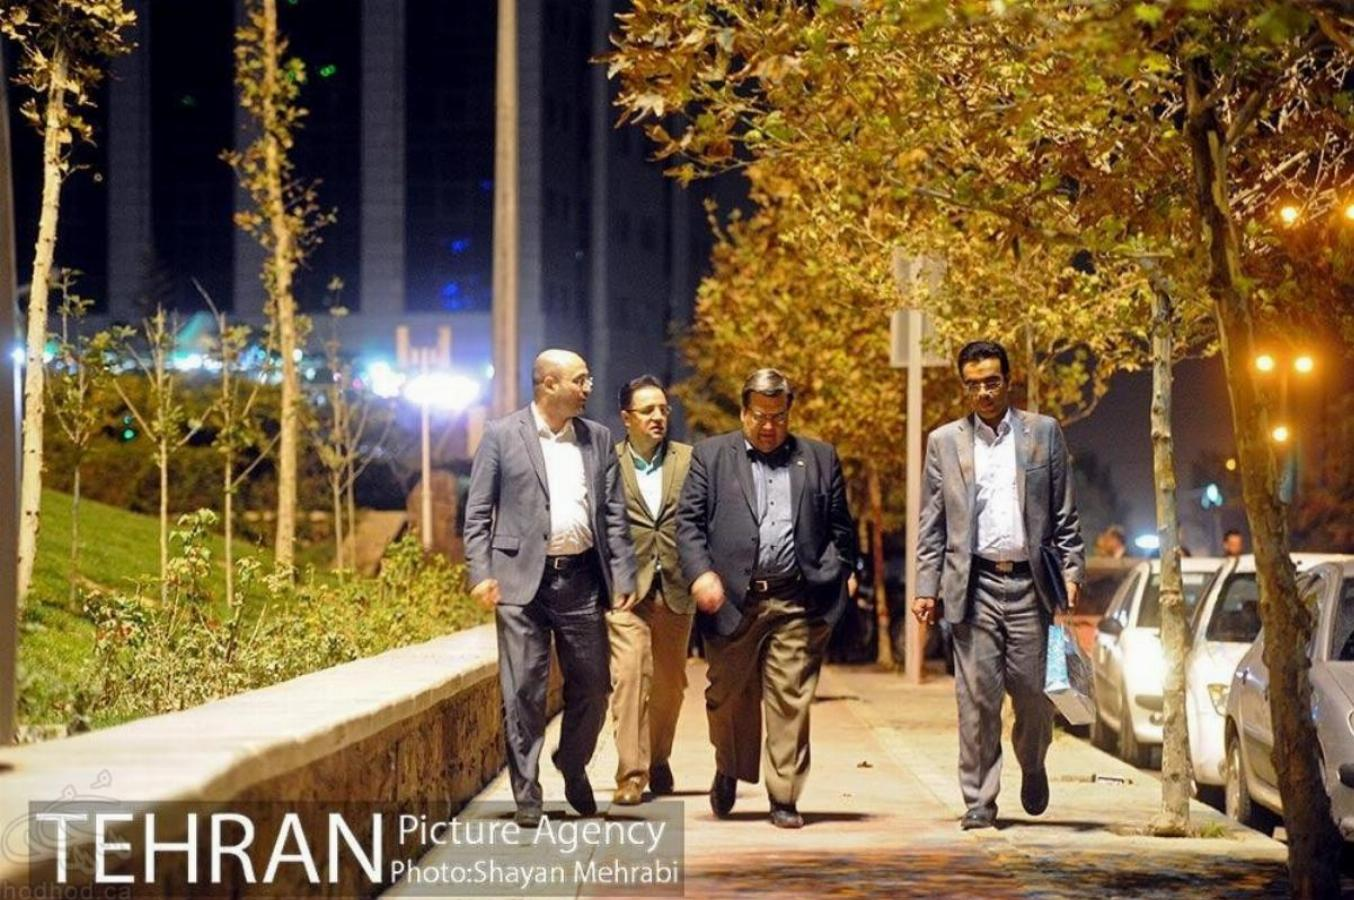 denis-coderre-in-tehran-day-1st-7